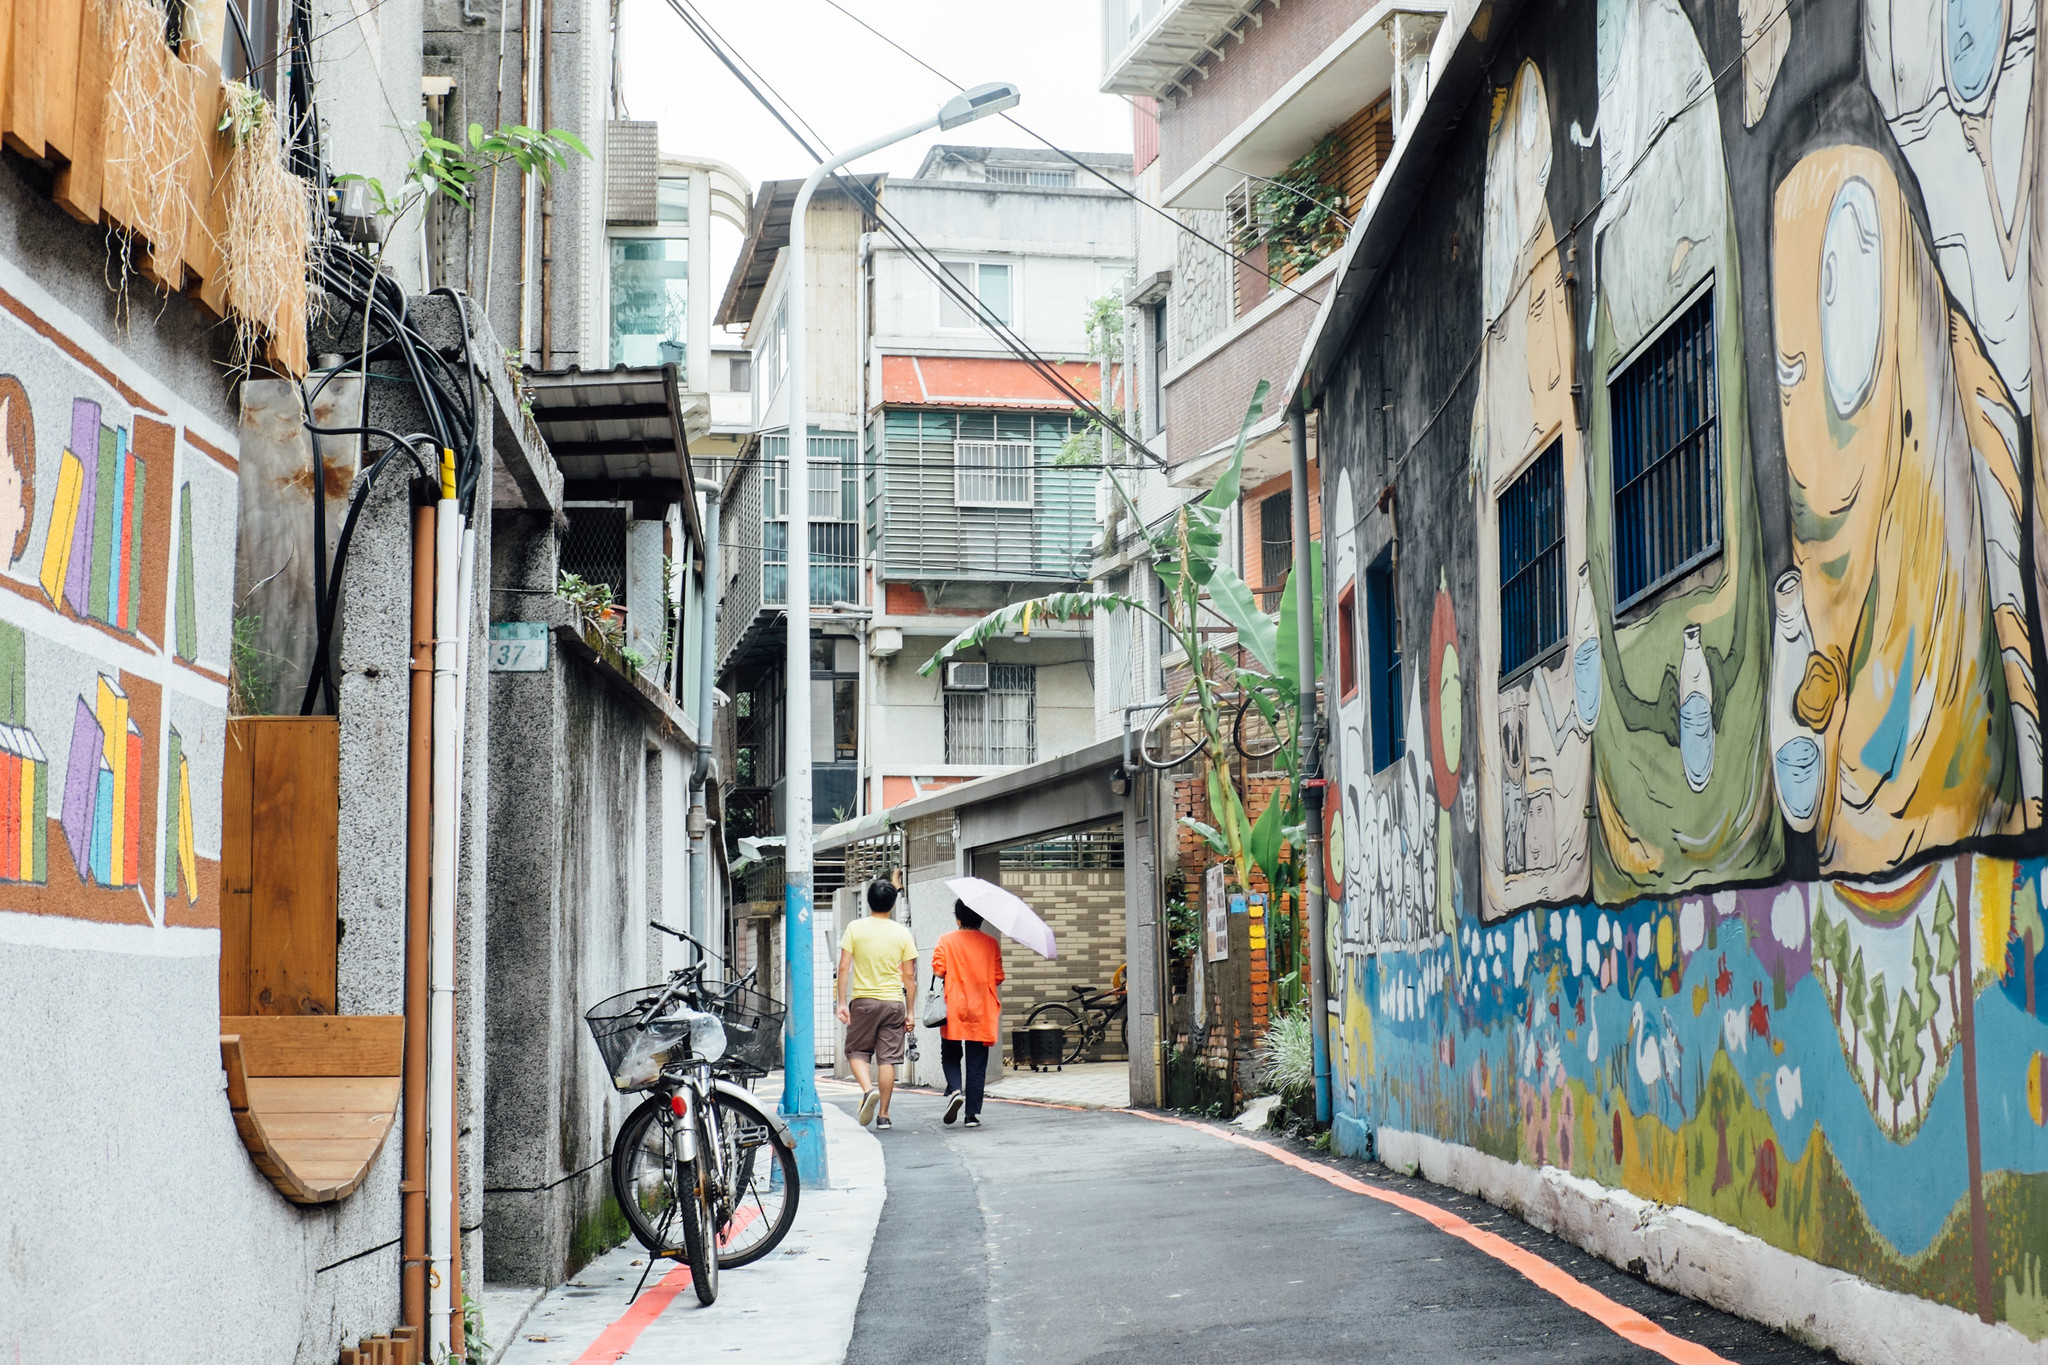 Find cheap lodging in Taipei near the University District of Shida